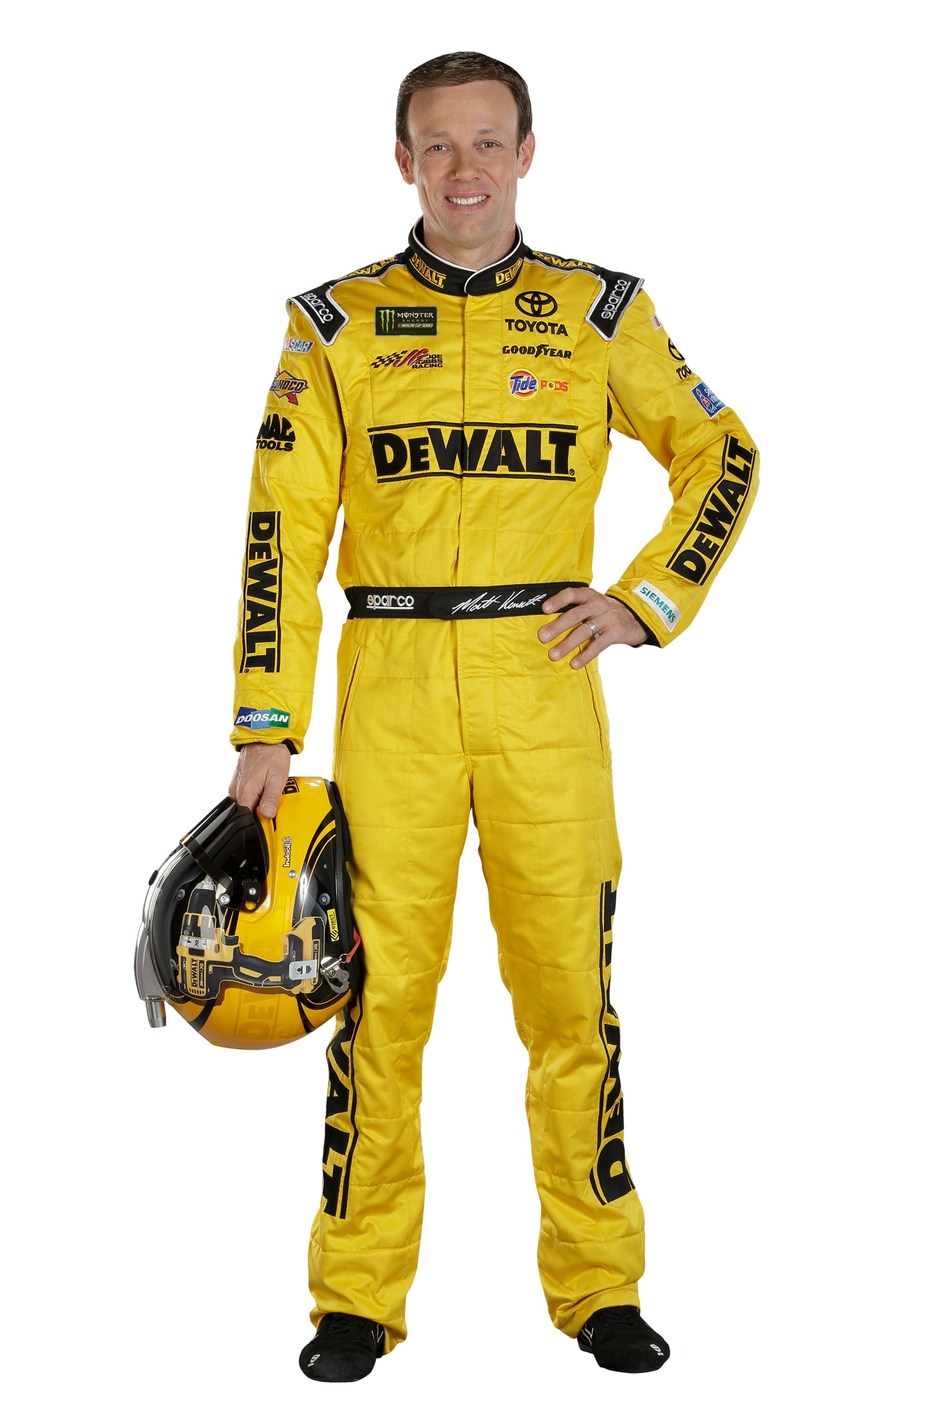 Matt Kenseth, driver of the No. 20 DEWALT Toyota car, will present a check to WWP on Saturday.